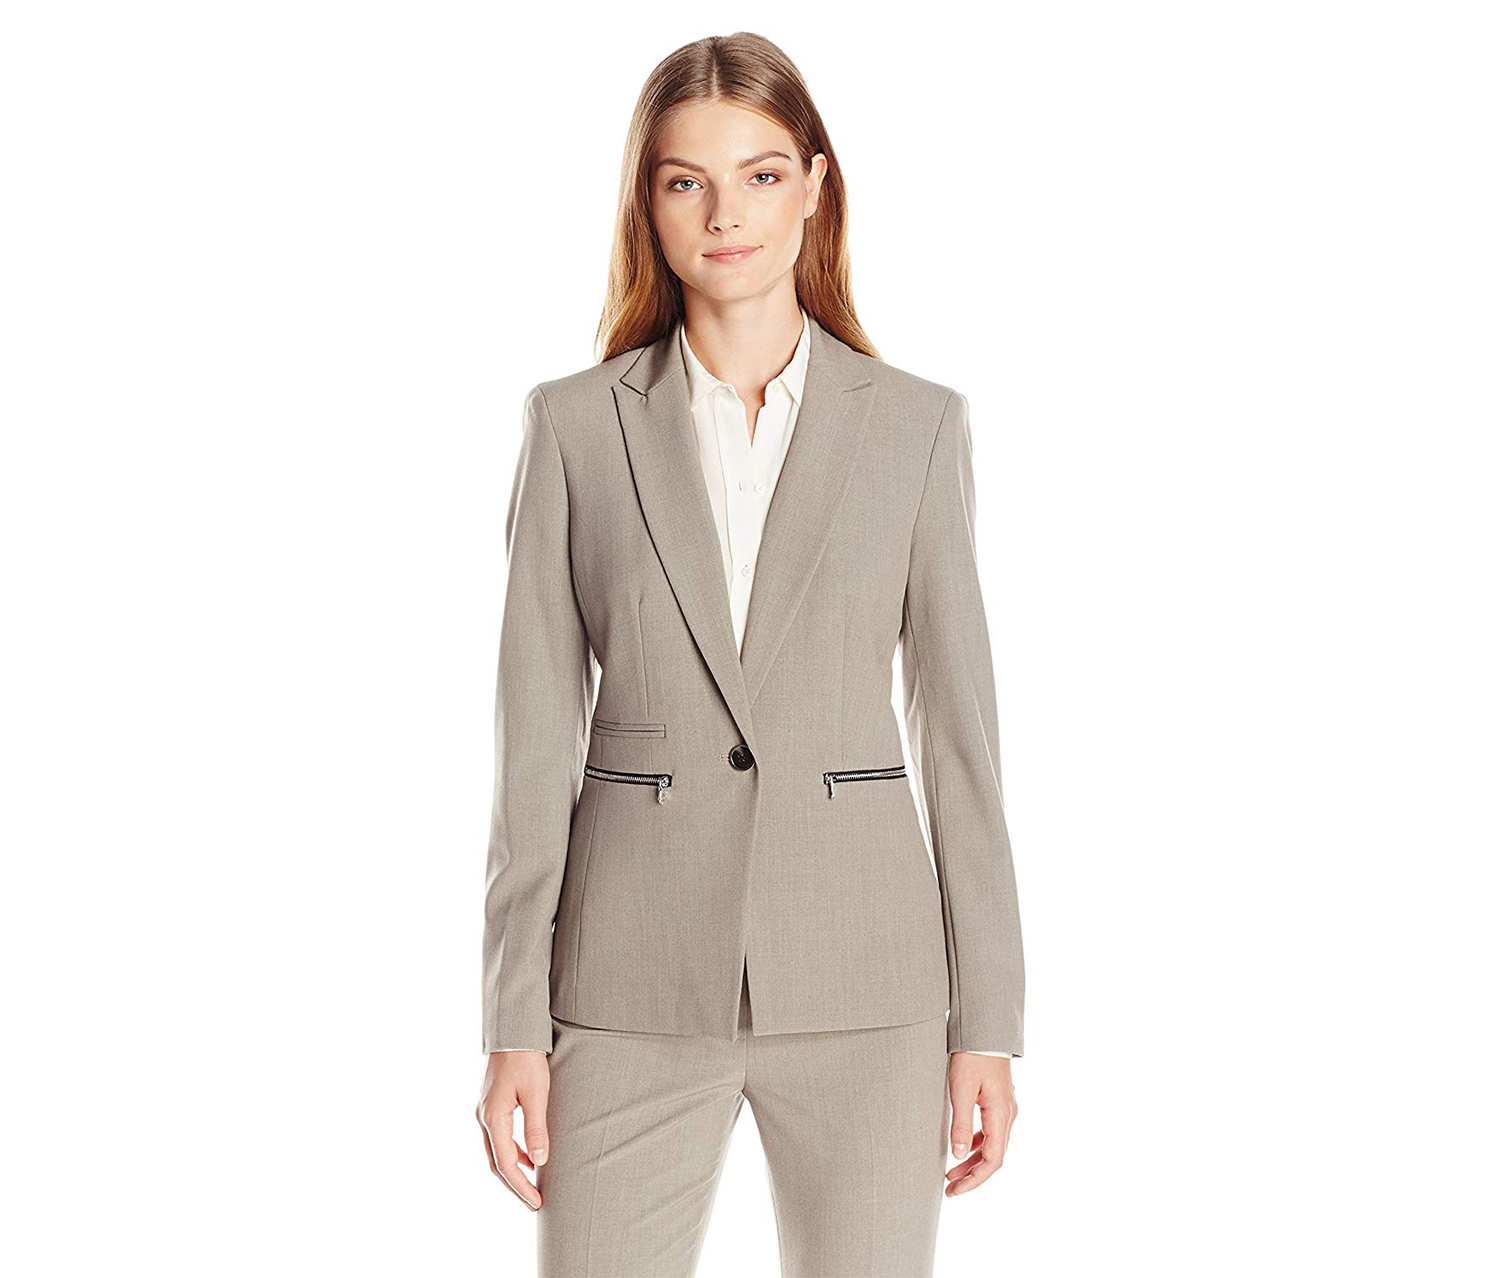 Nine West Women's Taylor Zip-Pocket Blazer, Grey